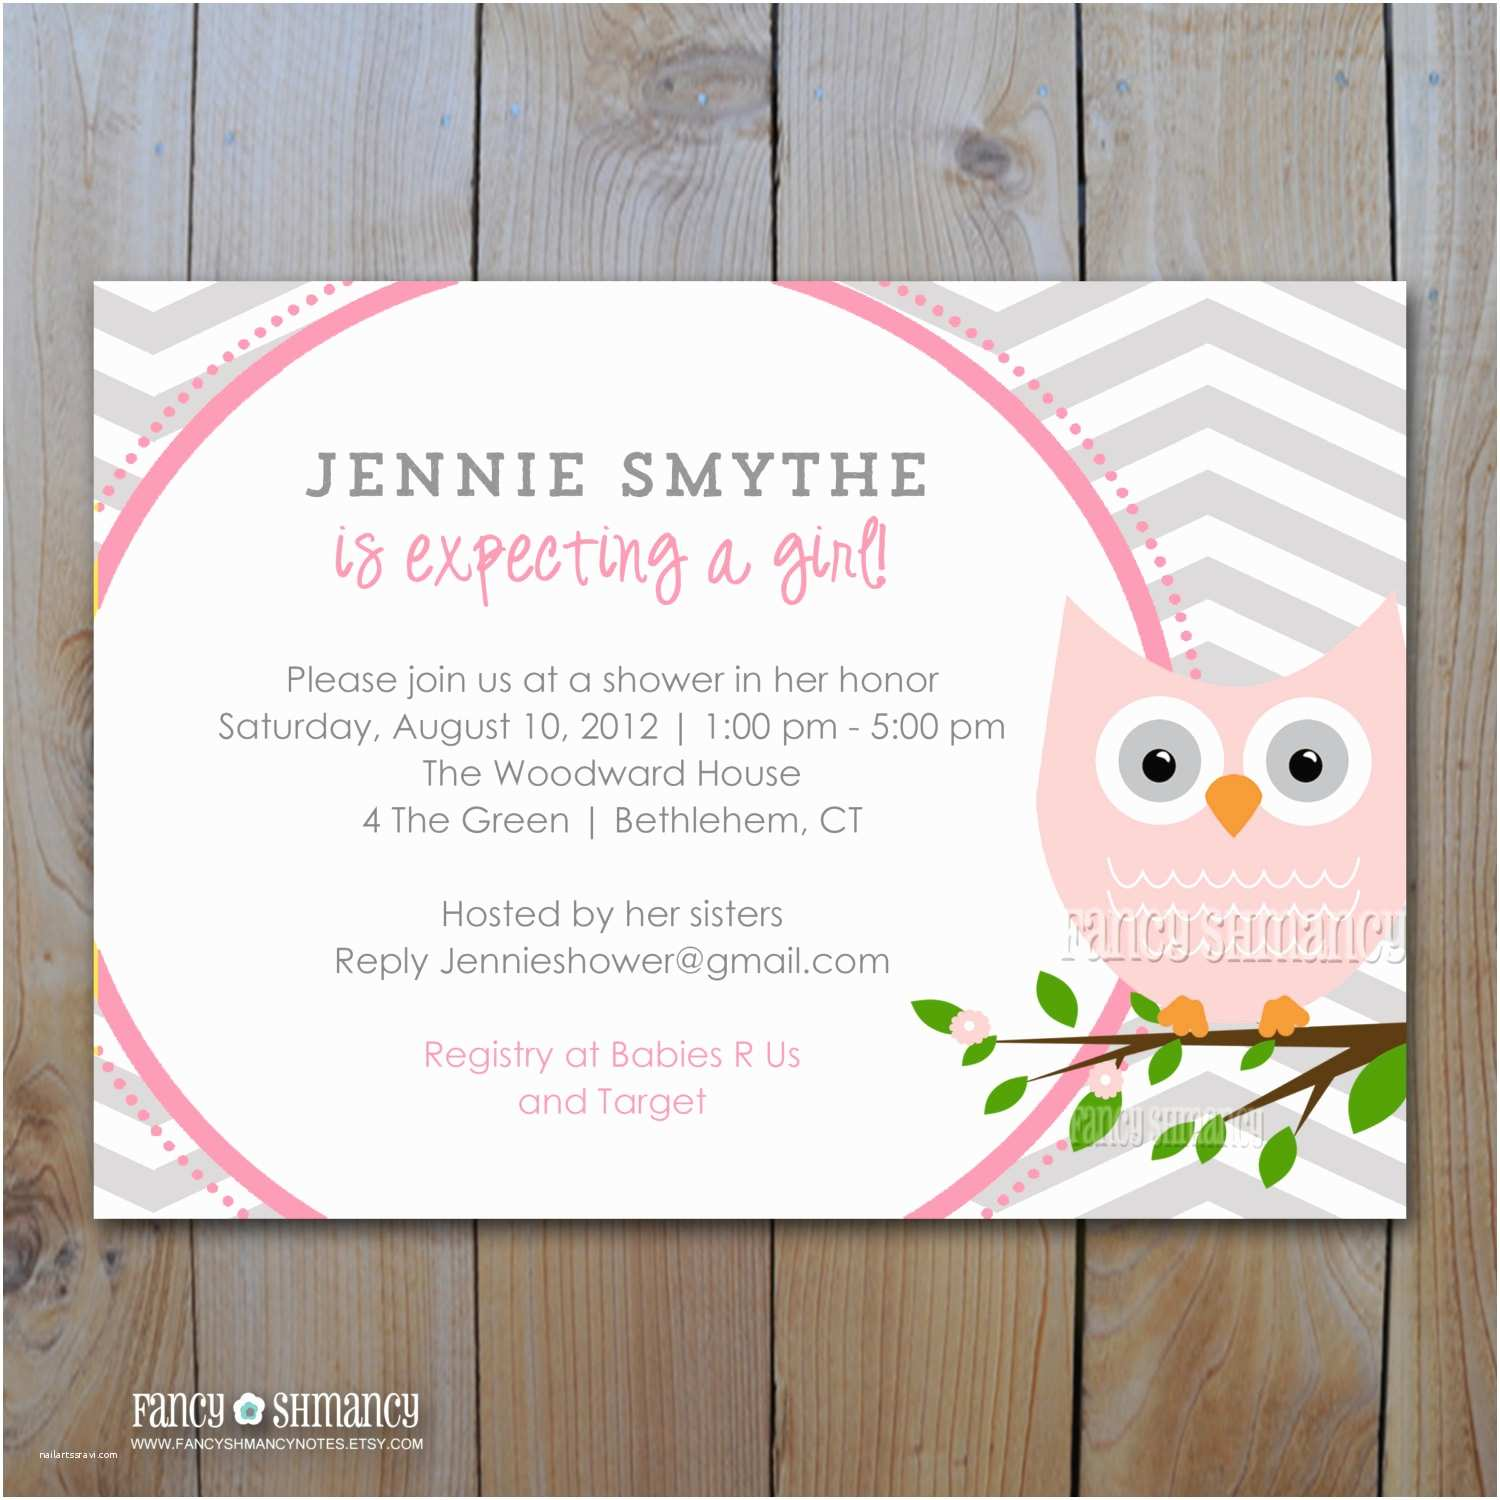 Pink and Gray Baby Shower Invitations Owl Baby Shower Invitation Grey and Pink Owl with Grey